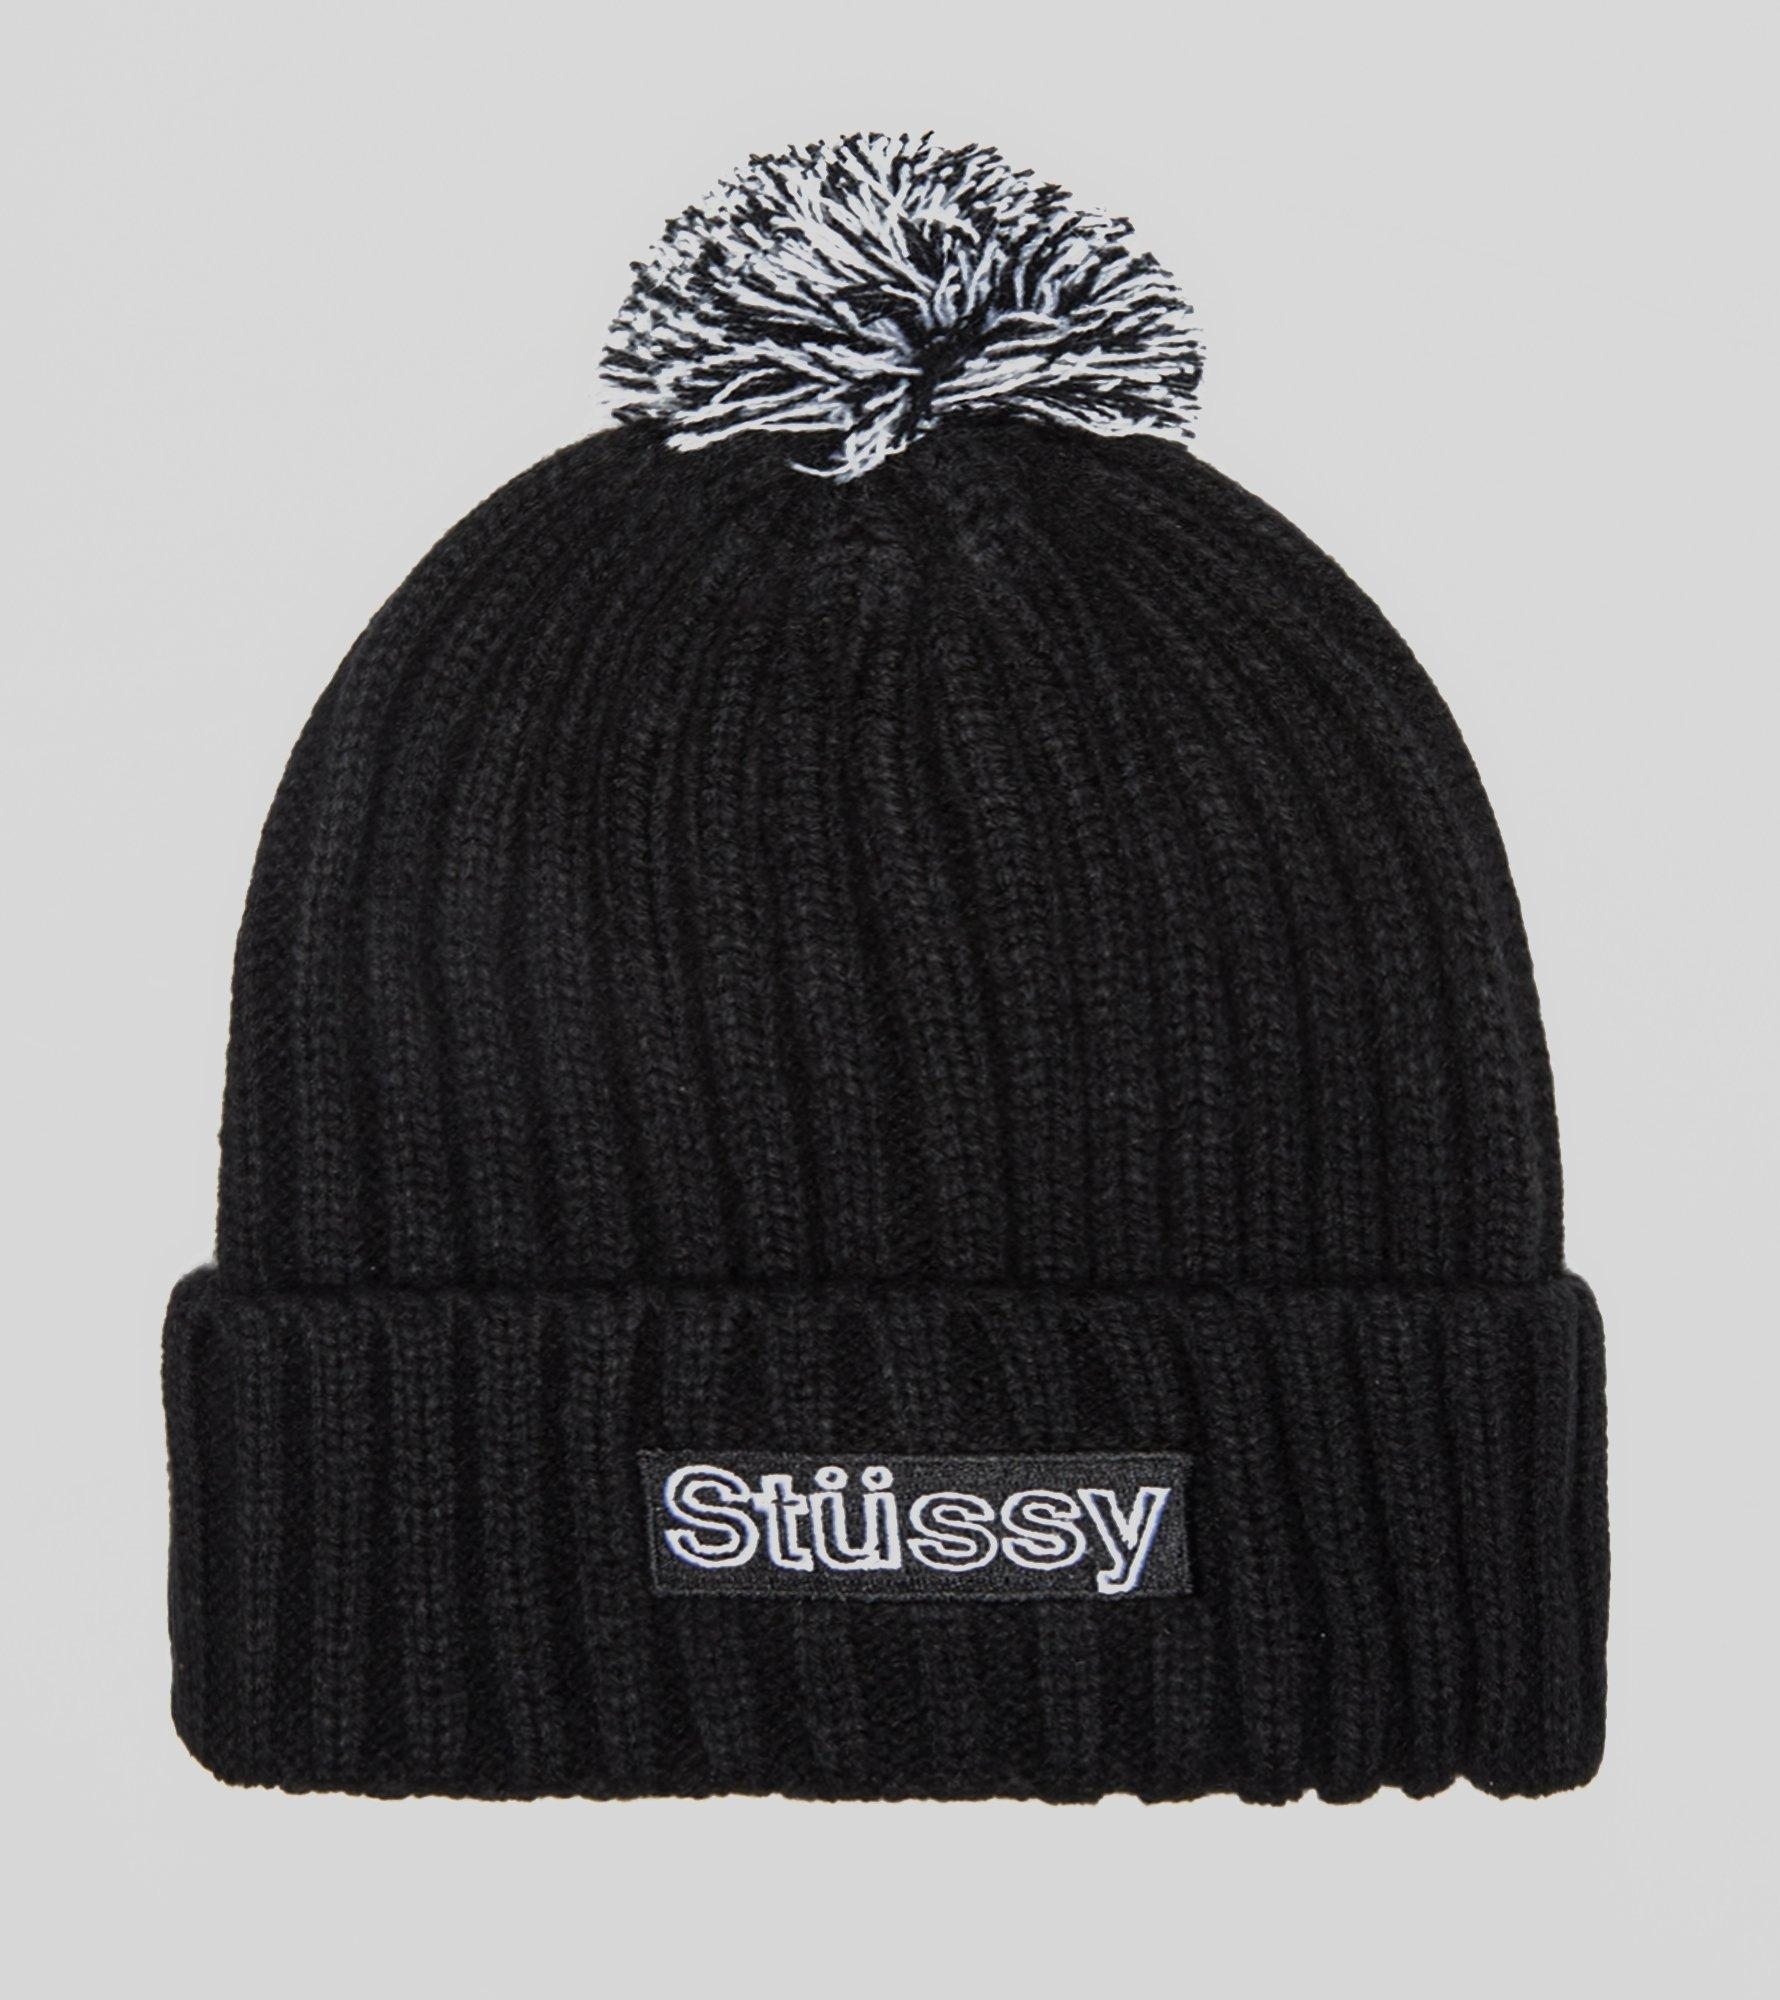 Stussy Rudy Beanie Hat In Black